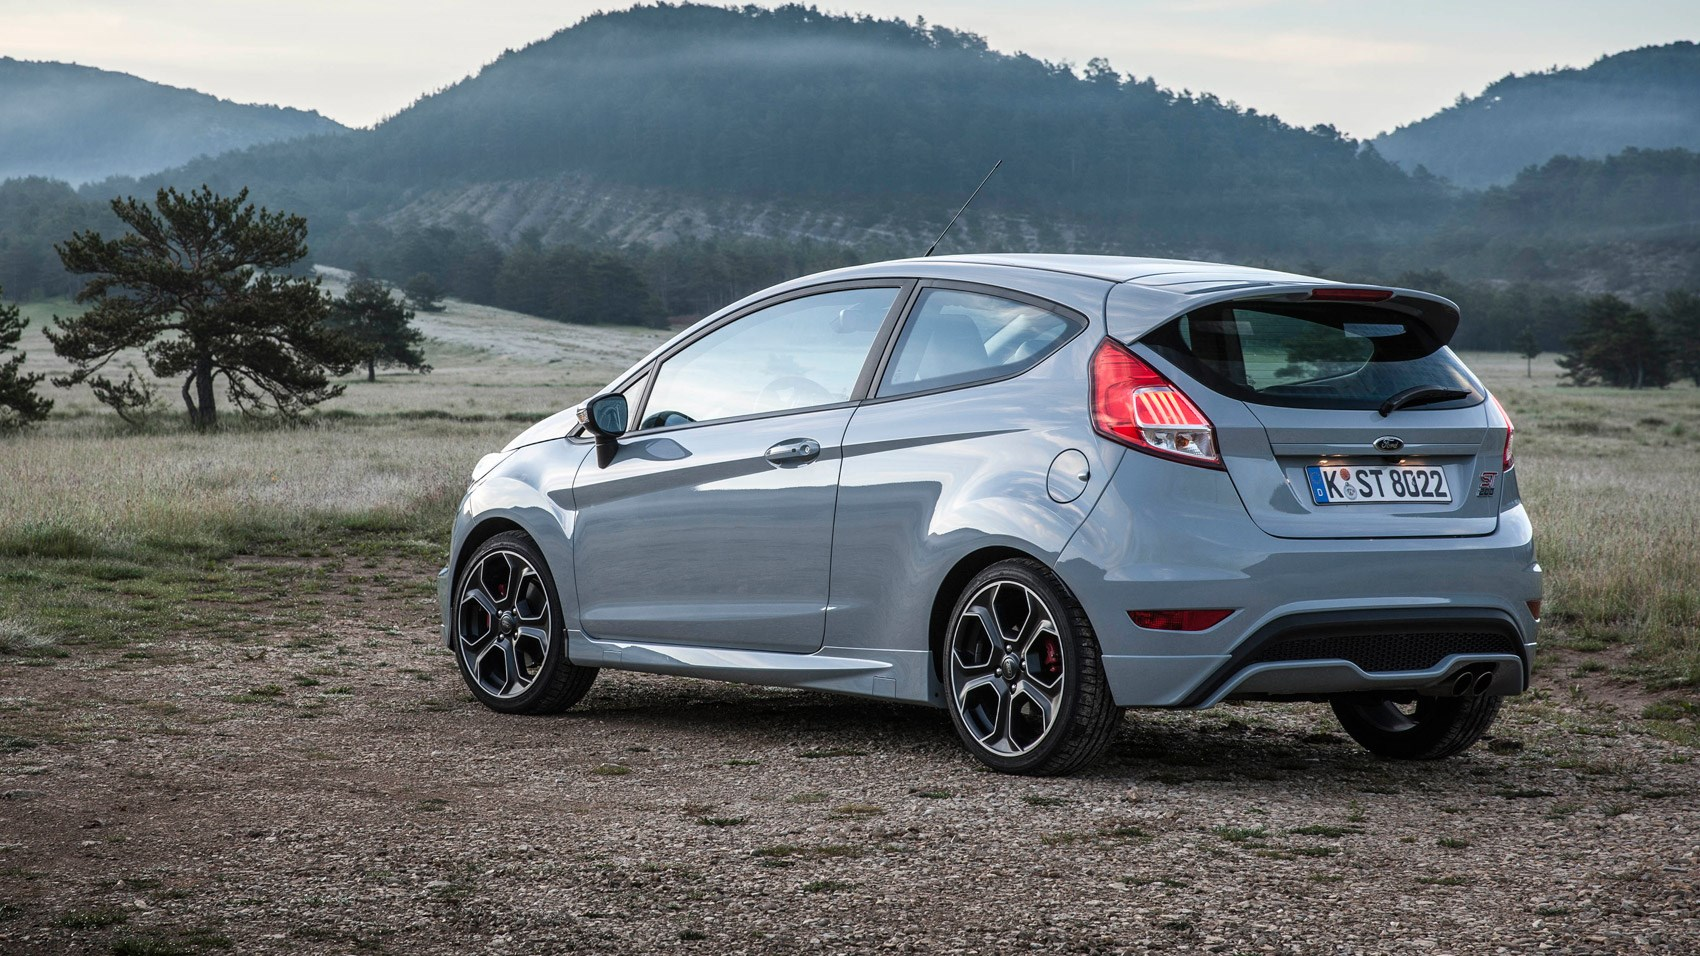 ford fiesta st200 2016 review by car magazine. Black Bedroom Furniture Sets. Home Design Ideas